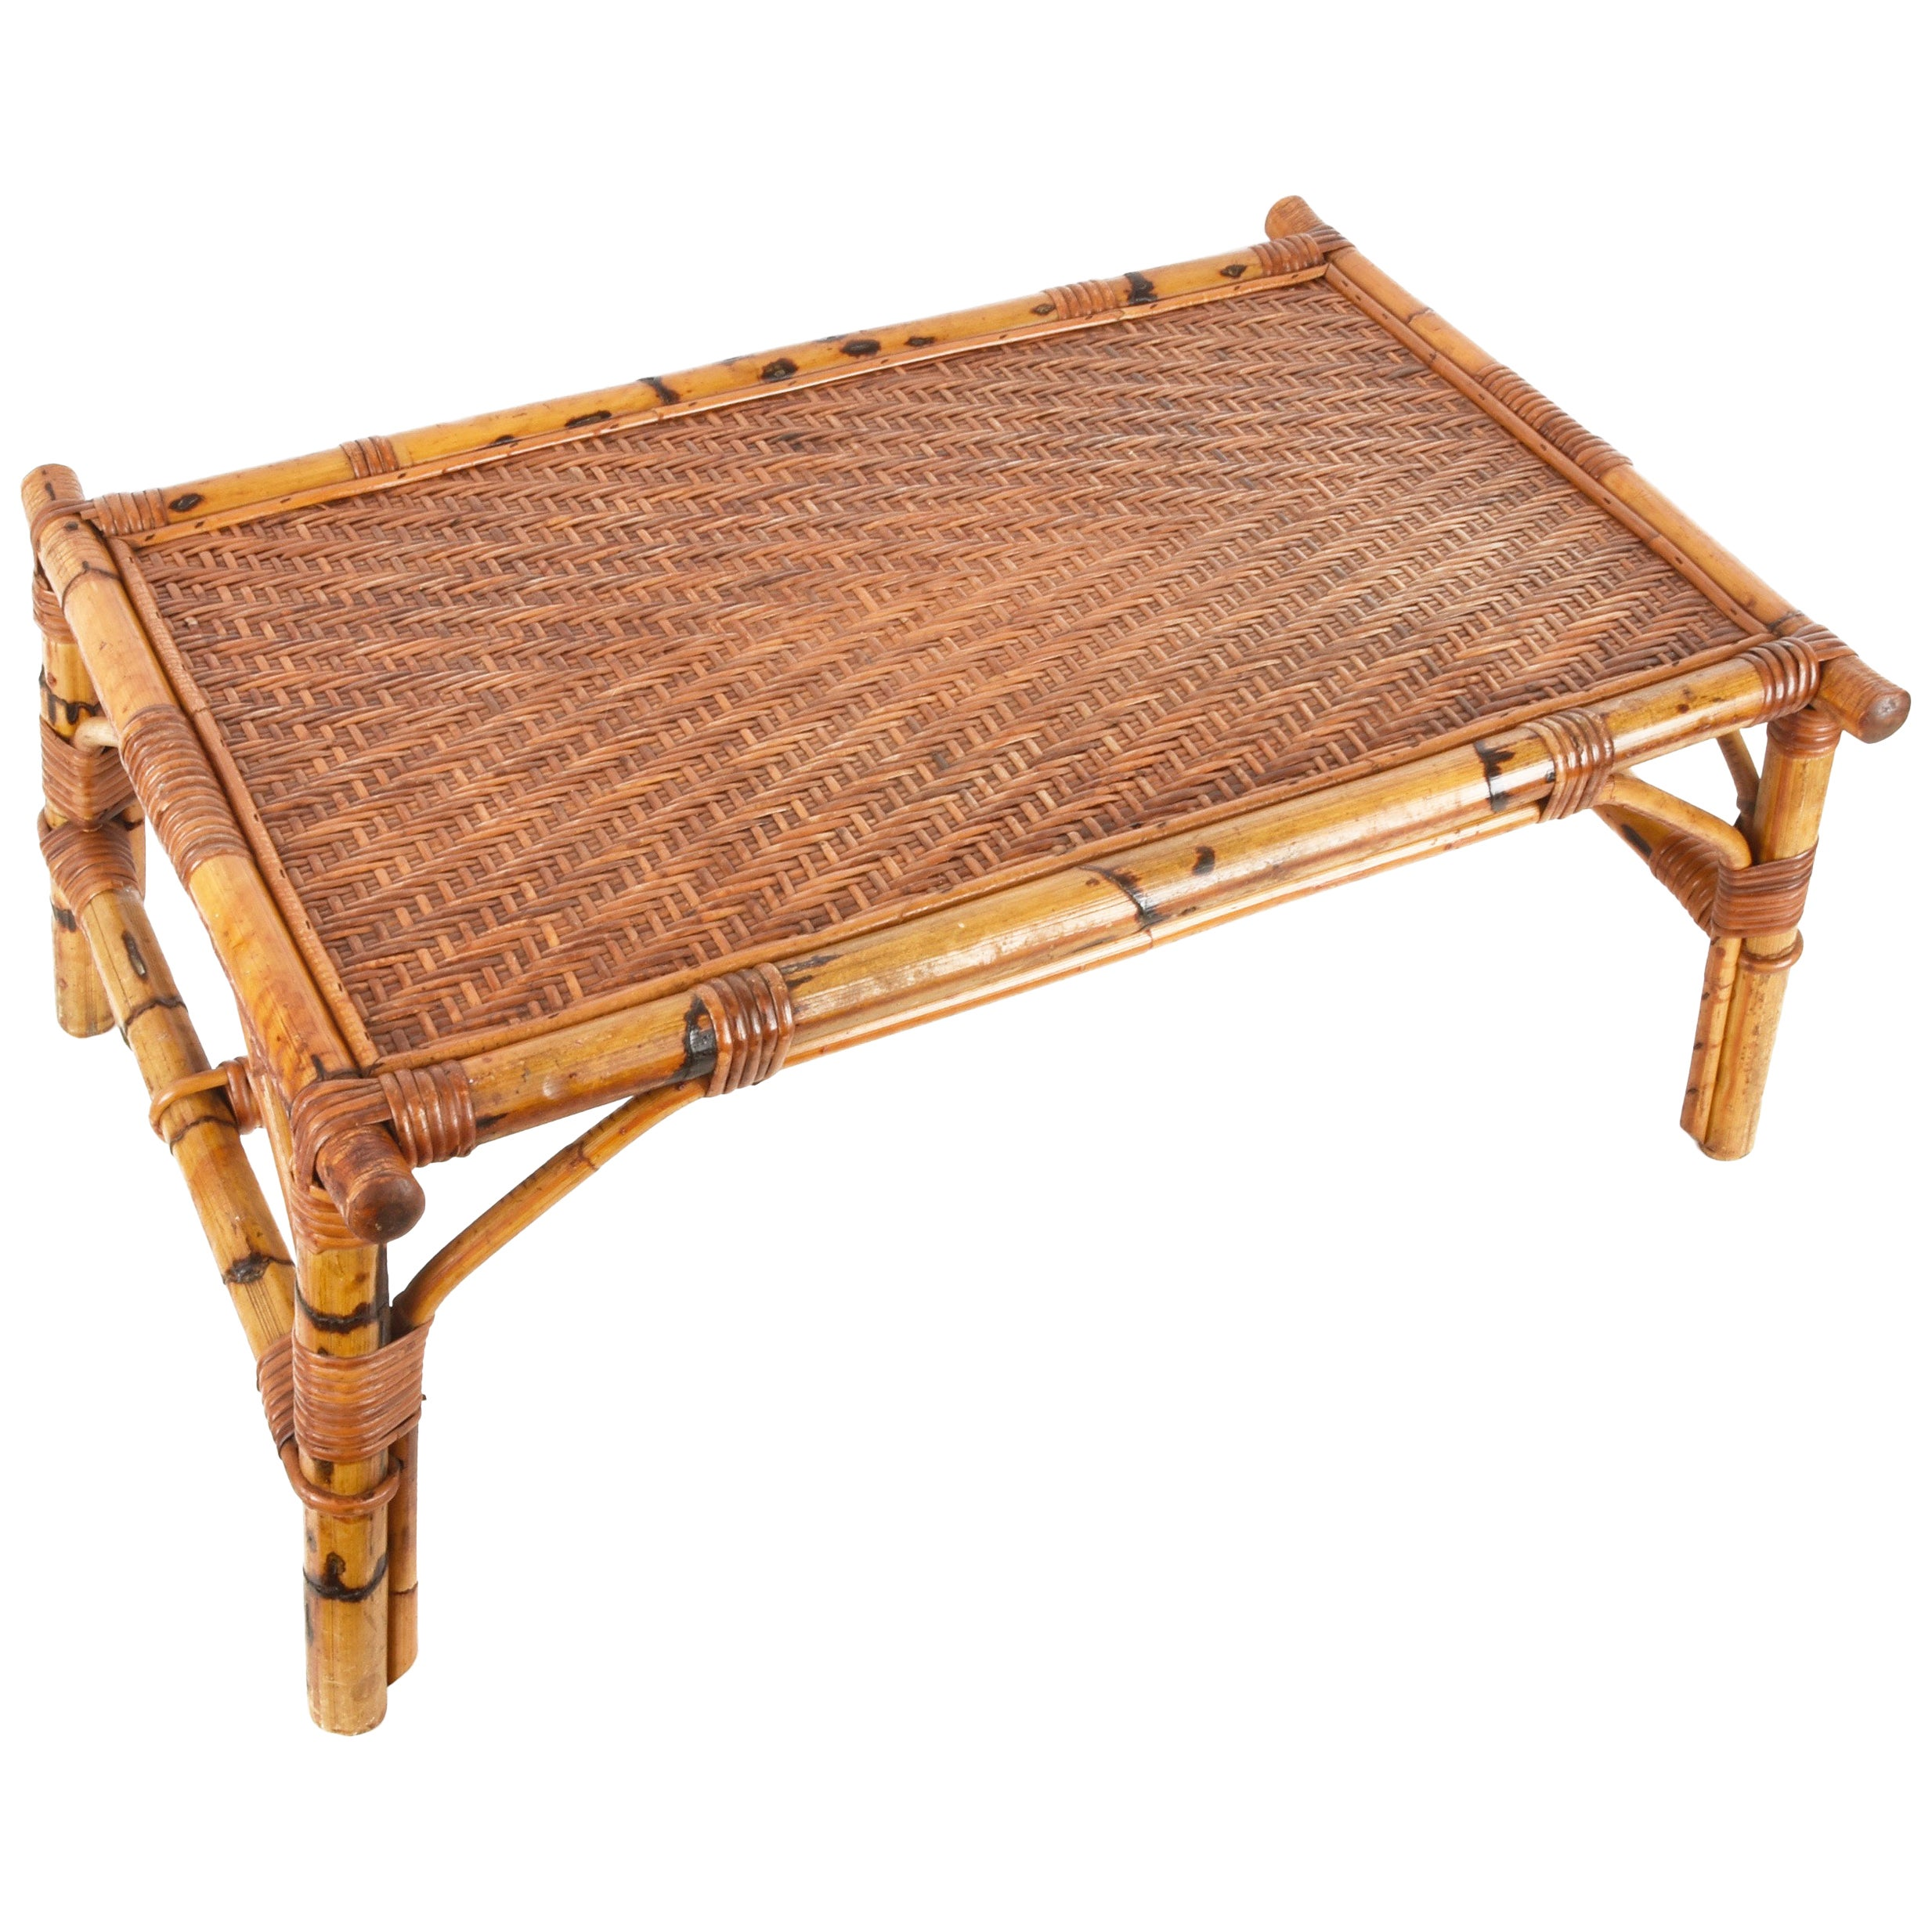 Vivai del Sud Midcentury Italian Rectangular Bamboo and Rattan Coffee Table 1970